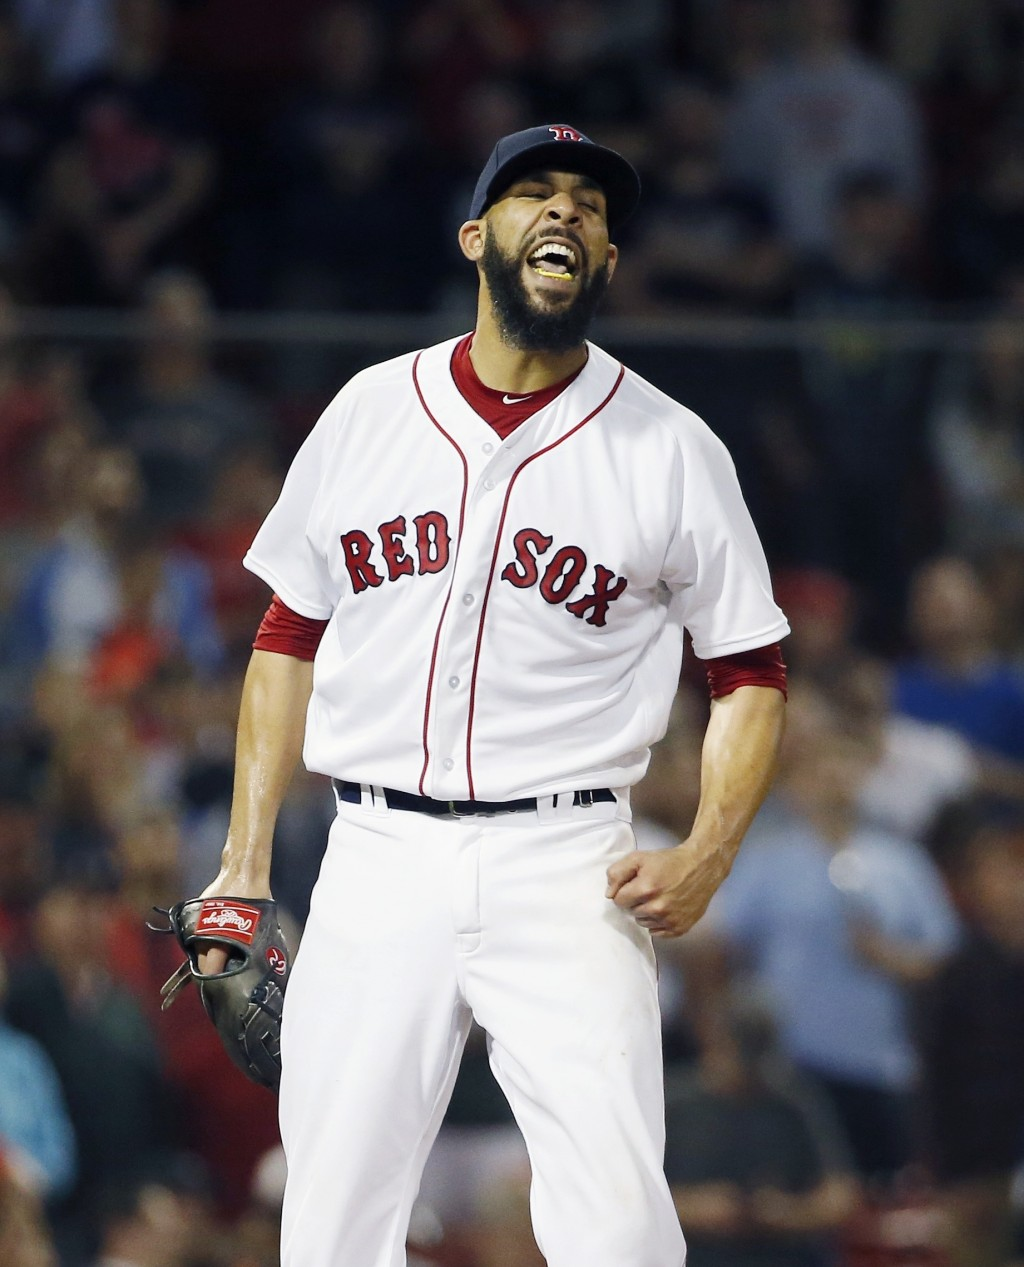 Boston Red Sox's David Price celebrates after Baltimore Orioles' Jonathan Schoop flied out for the final out of a baseball game in Boston, Thursday, M